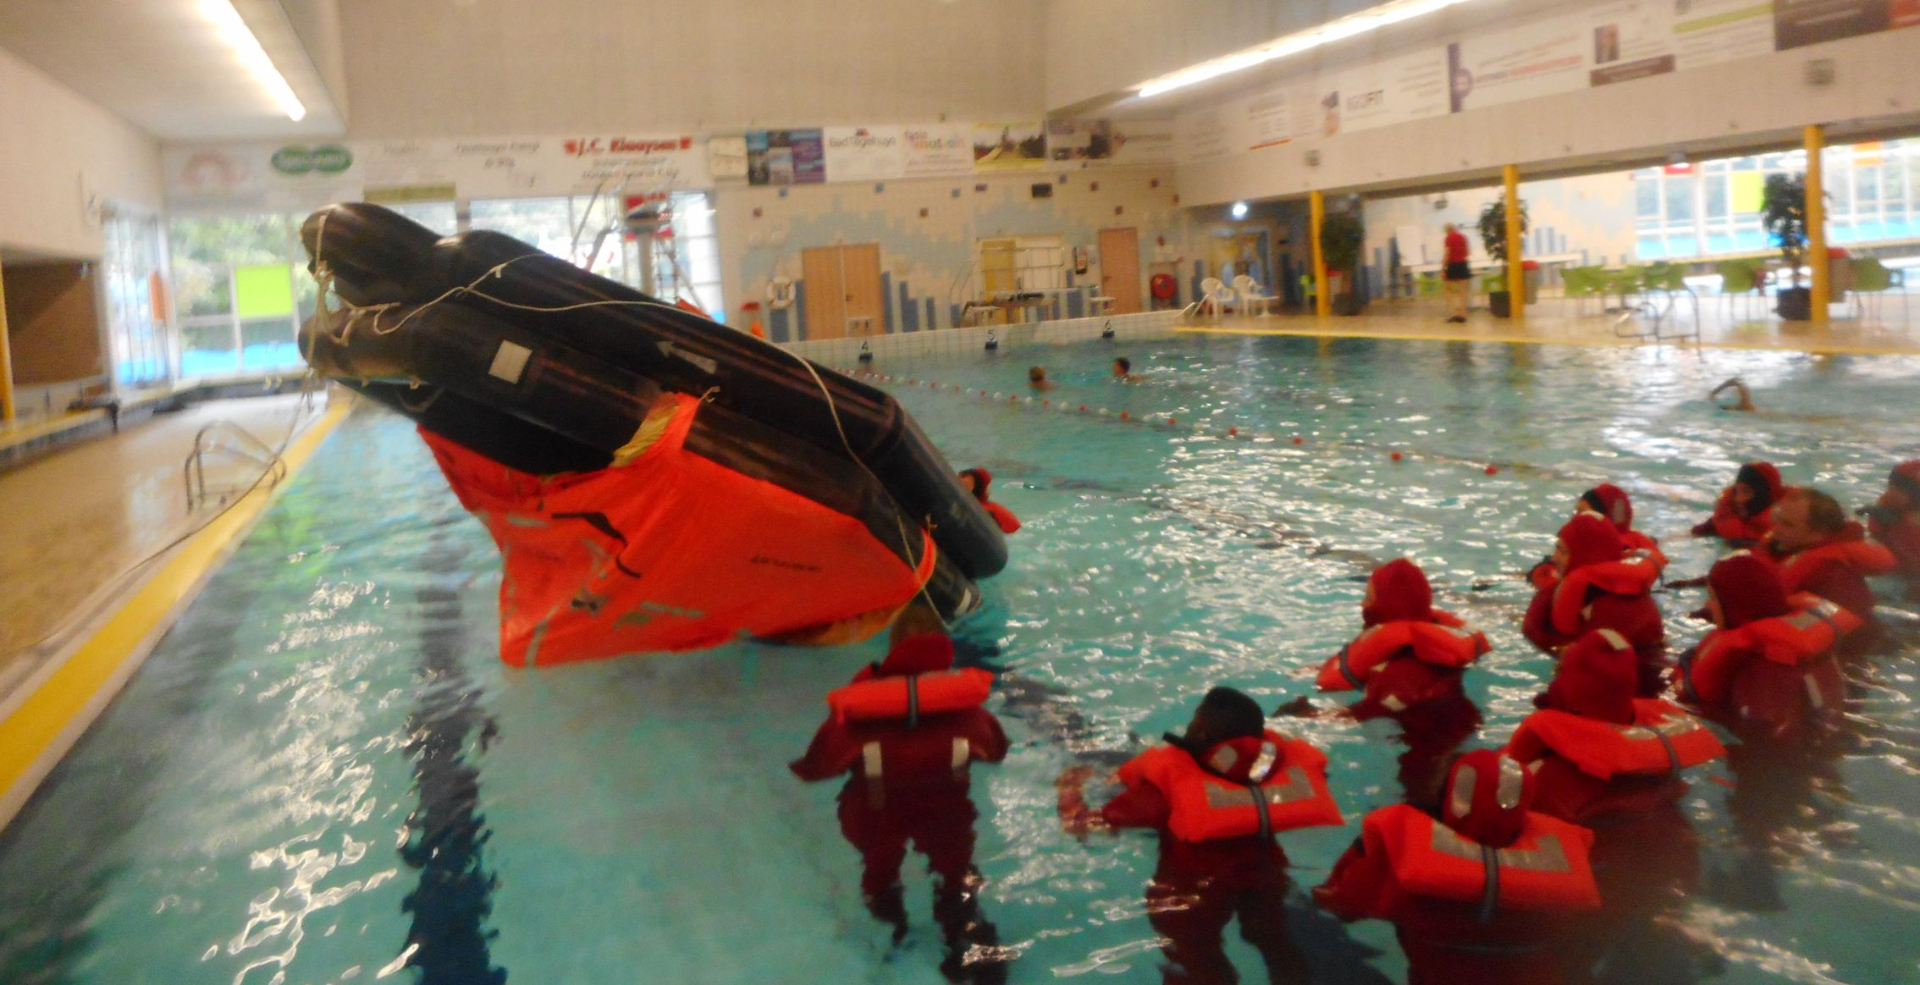 We get instructions on how to flip a life raft in the water